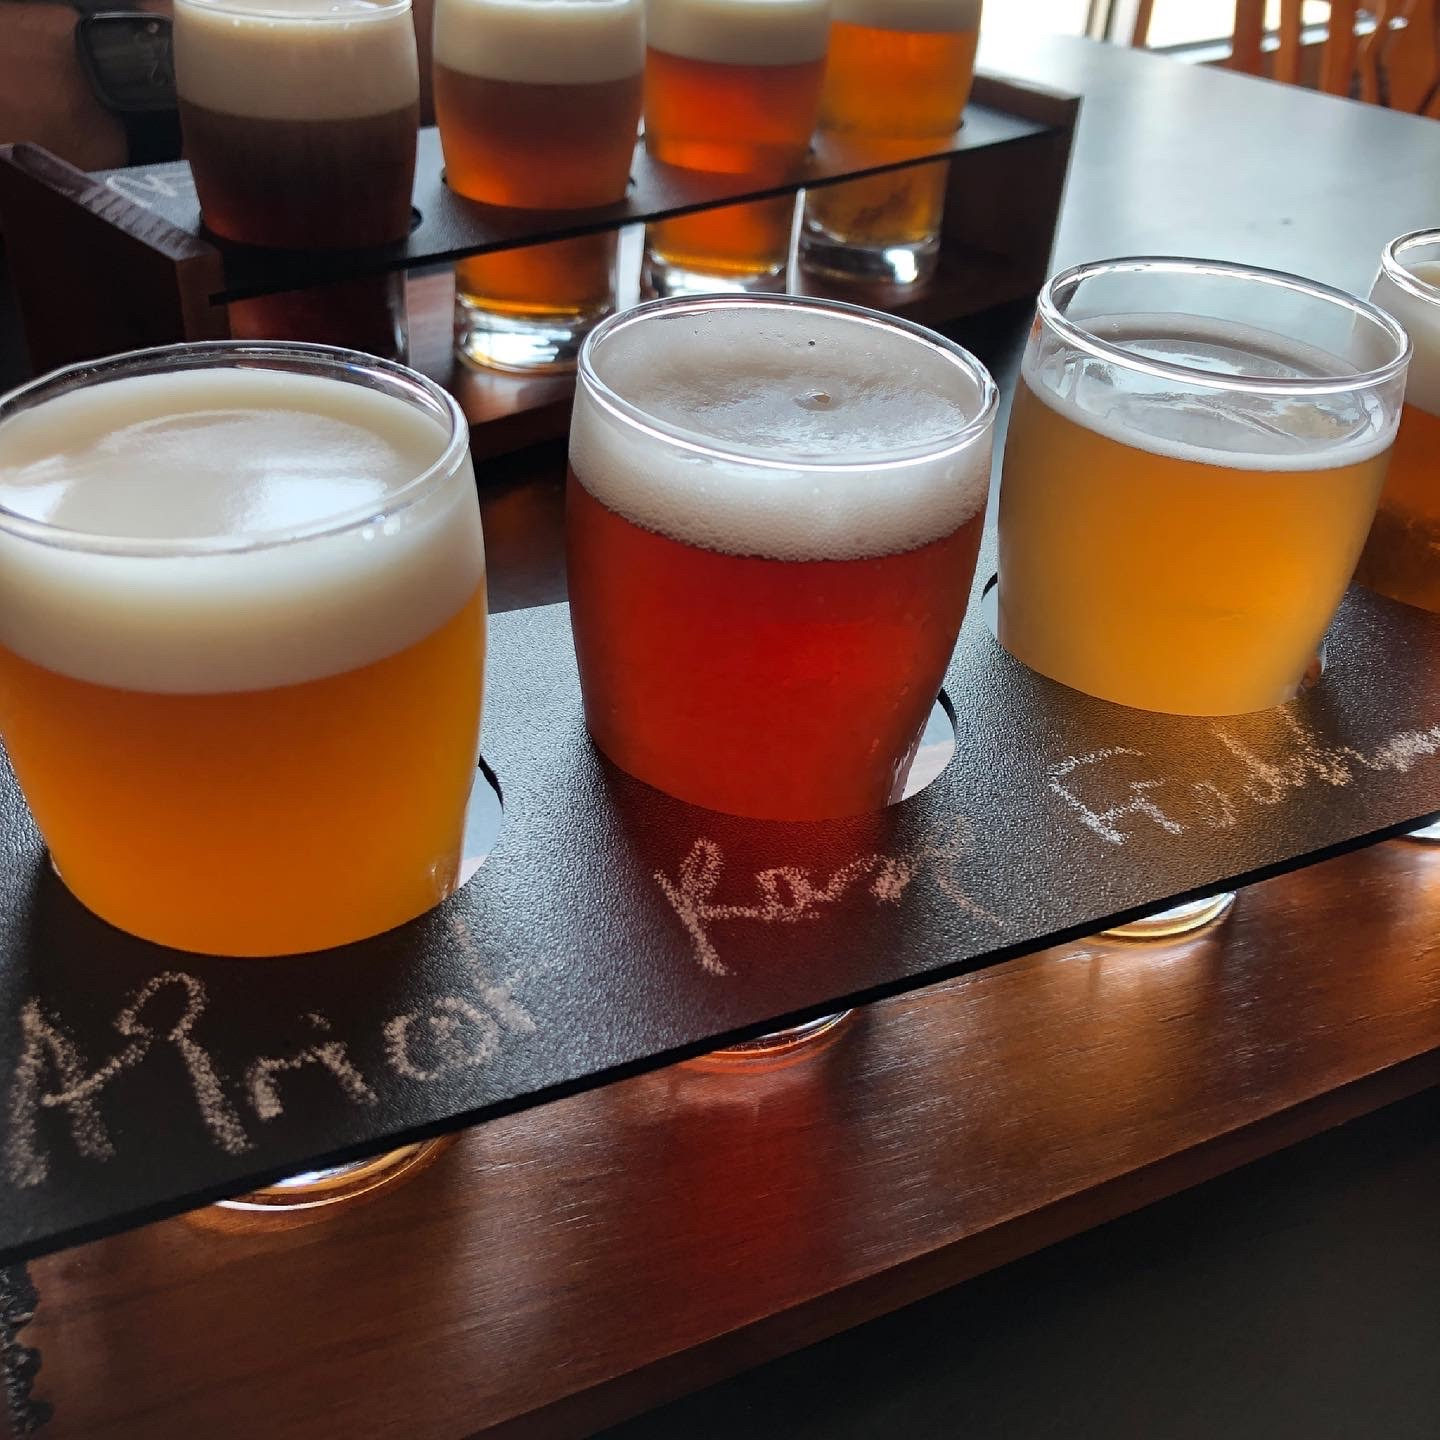 image showing a flight of four beer